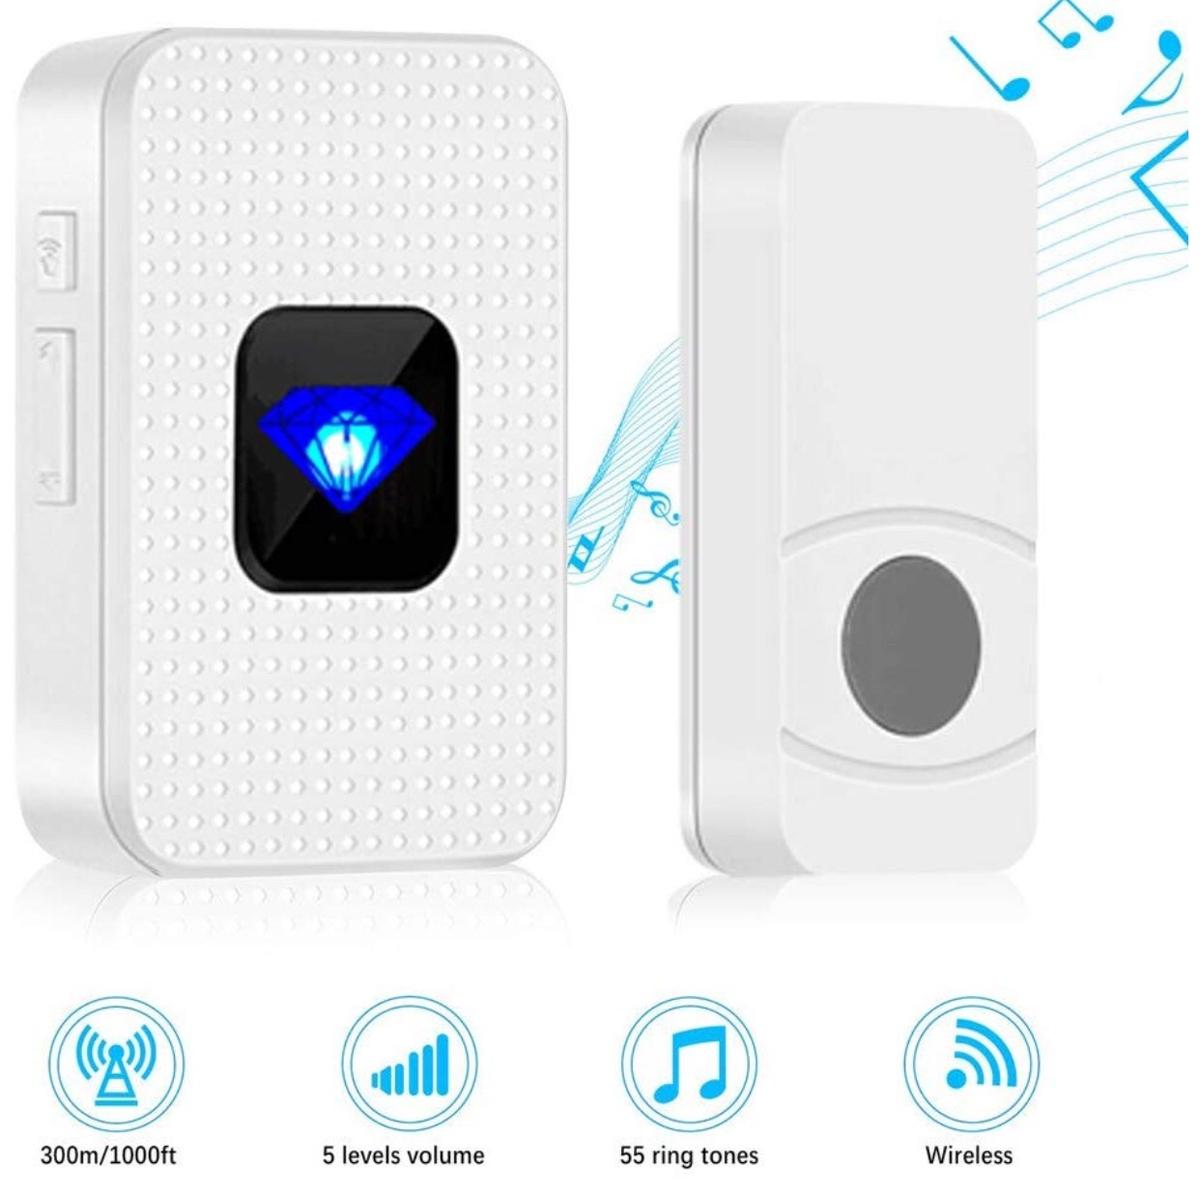 Wireless Doorbell, Mini Wall Plug-in Door Chime Kit IP55 Waterpoof Portable Doorbell Door Entry Bell with 1000ft Range, 55 Melodies, 5 Volume Levels and LED Flash